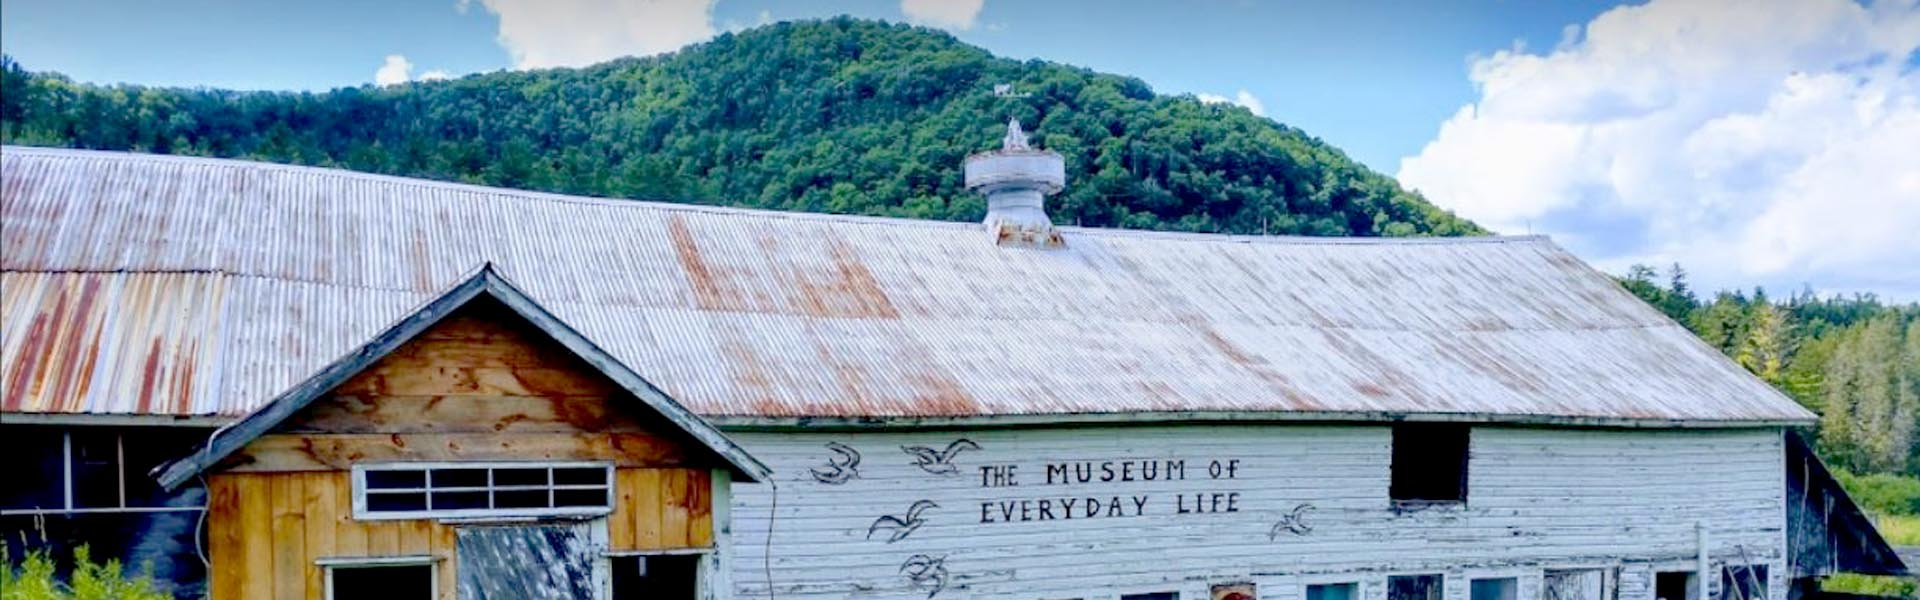 Museum Of Every Day Life Header